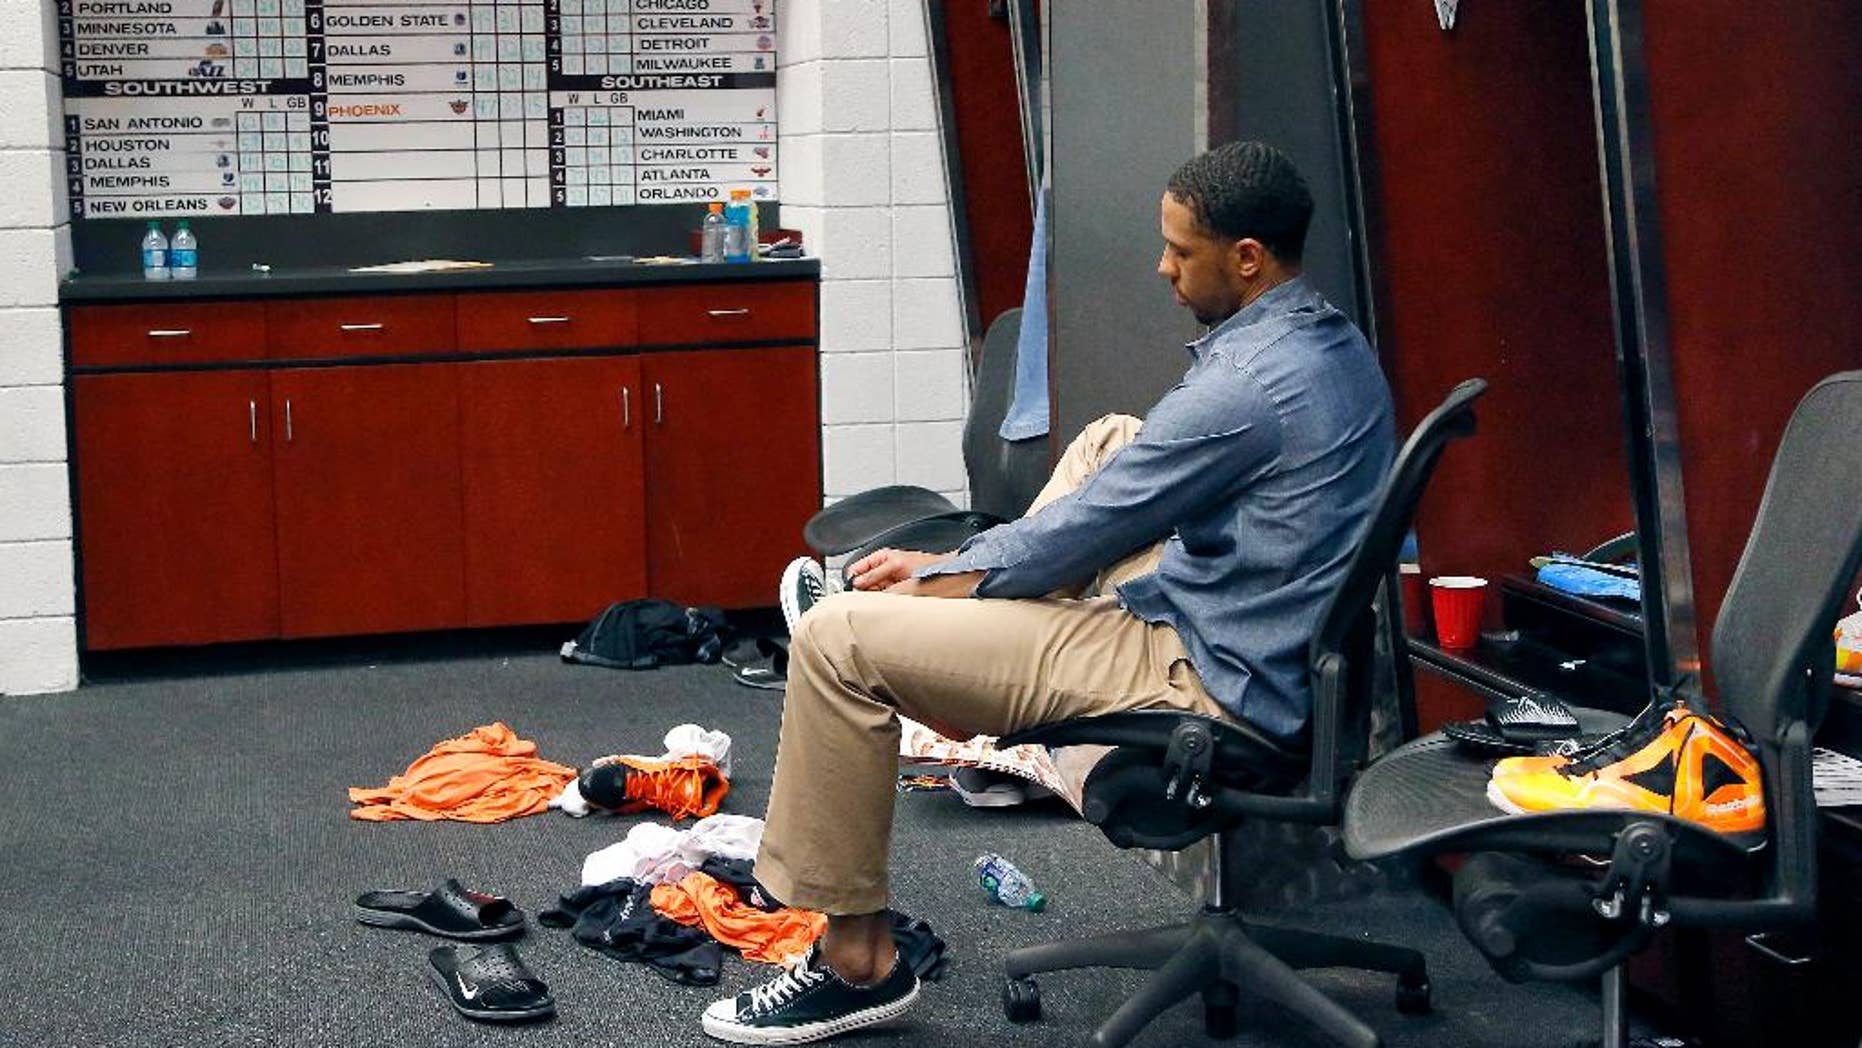 Phoenix Suns' Channing Frye laces up his shoe in the locker room after an NBA basketball game against the Memphis Grizzlies, Monday, April 14, 2014, in Phoenix. The Grizzlies won 97-91 eliminating the Suns from the playoffs. (AP Photo/Matt York)